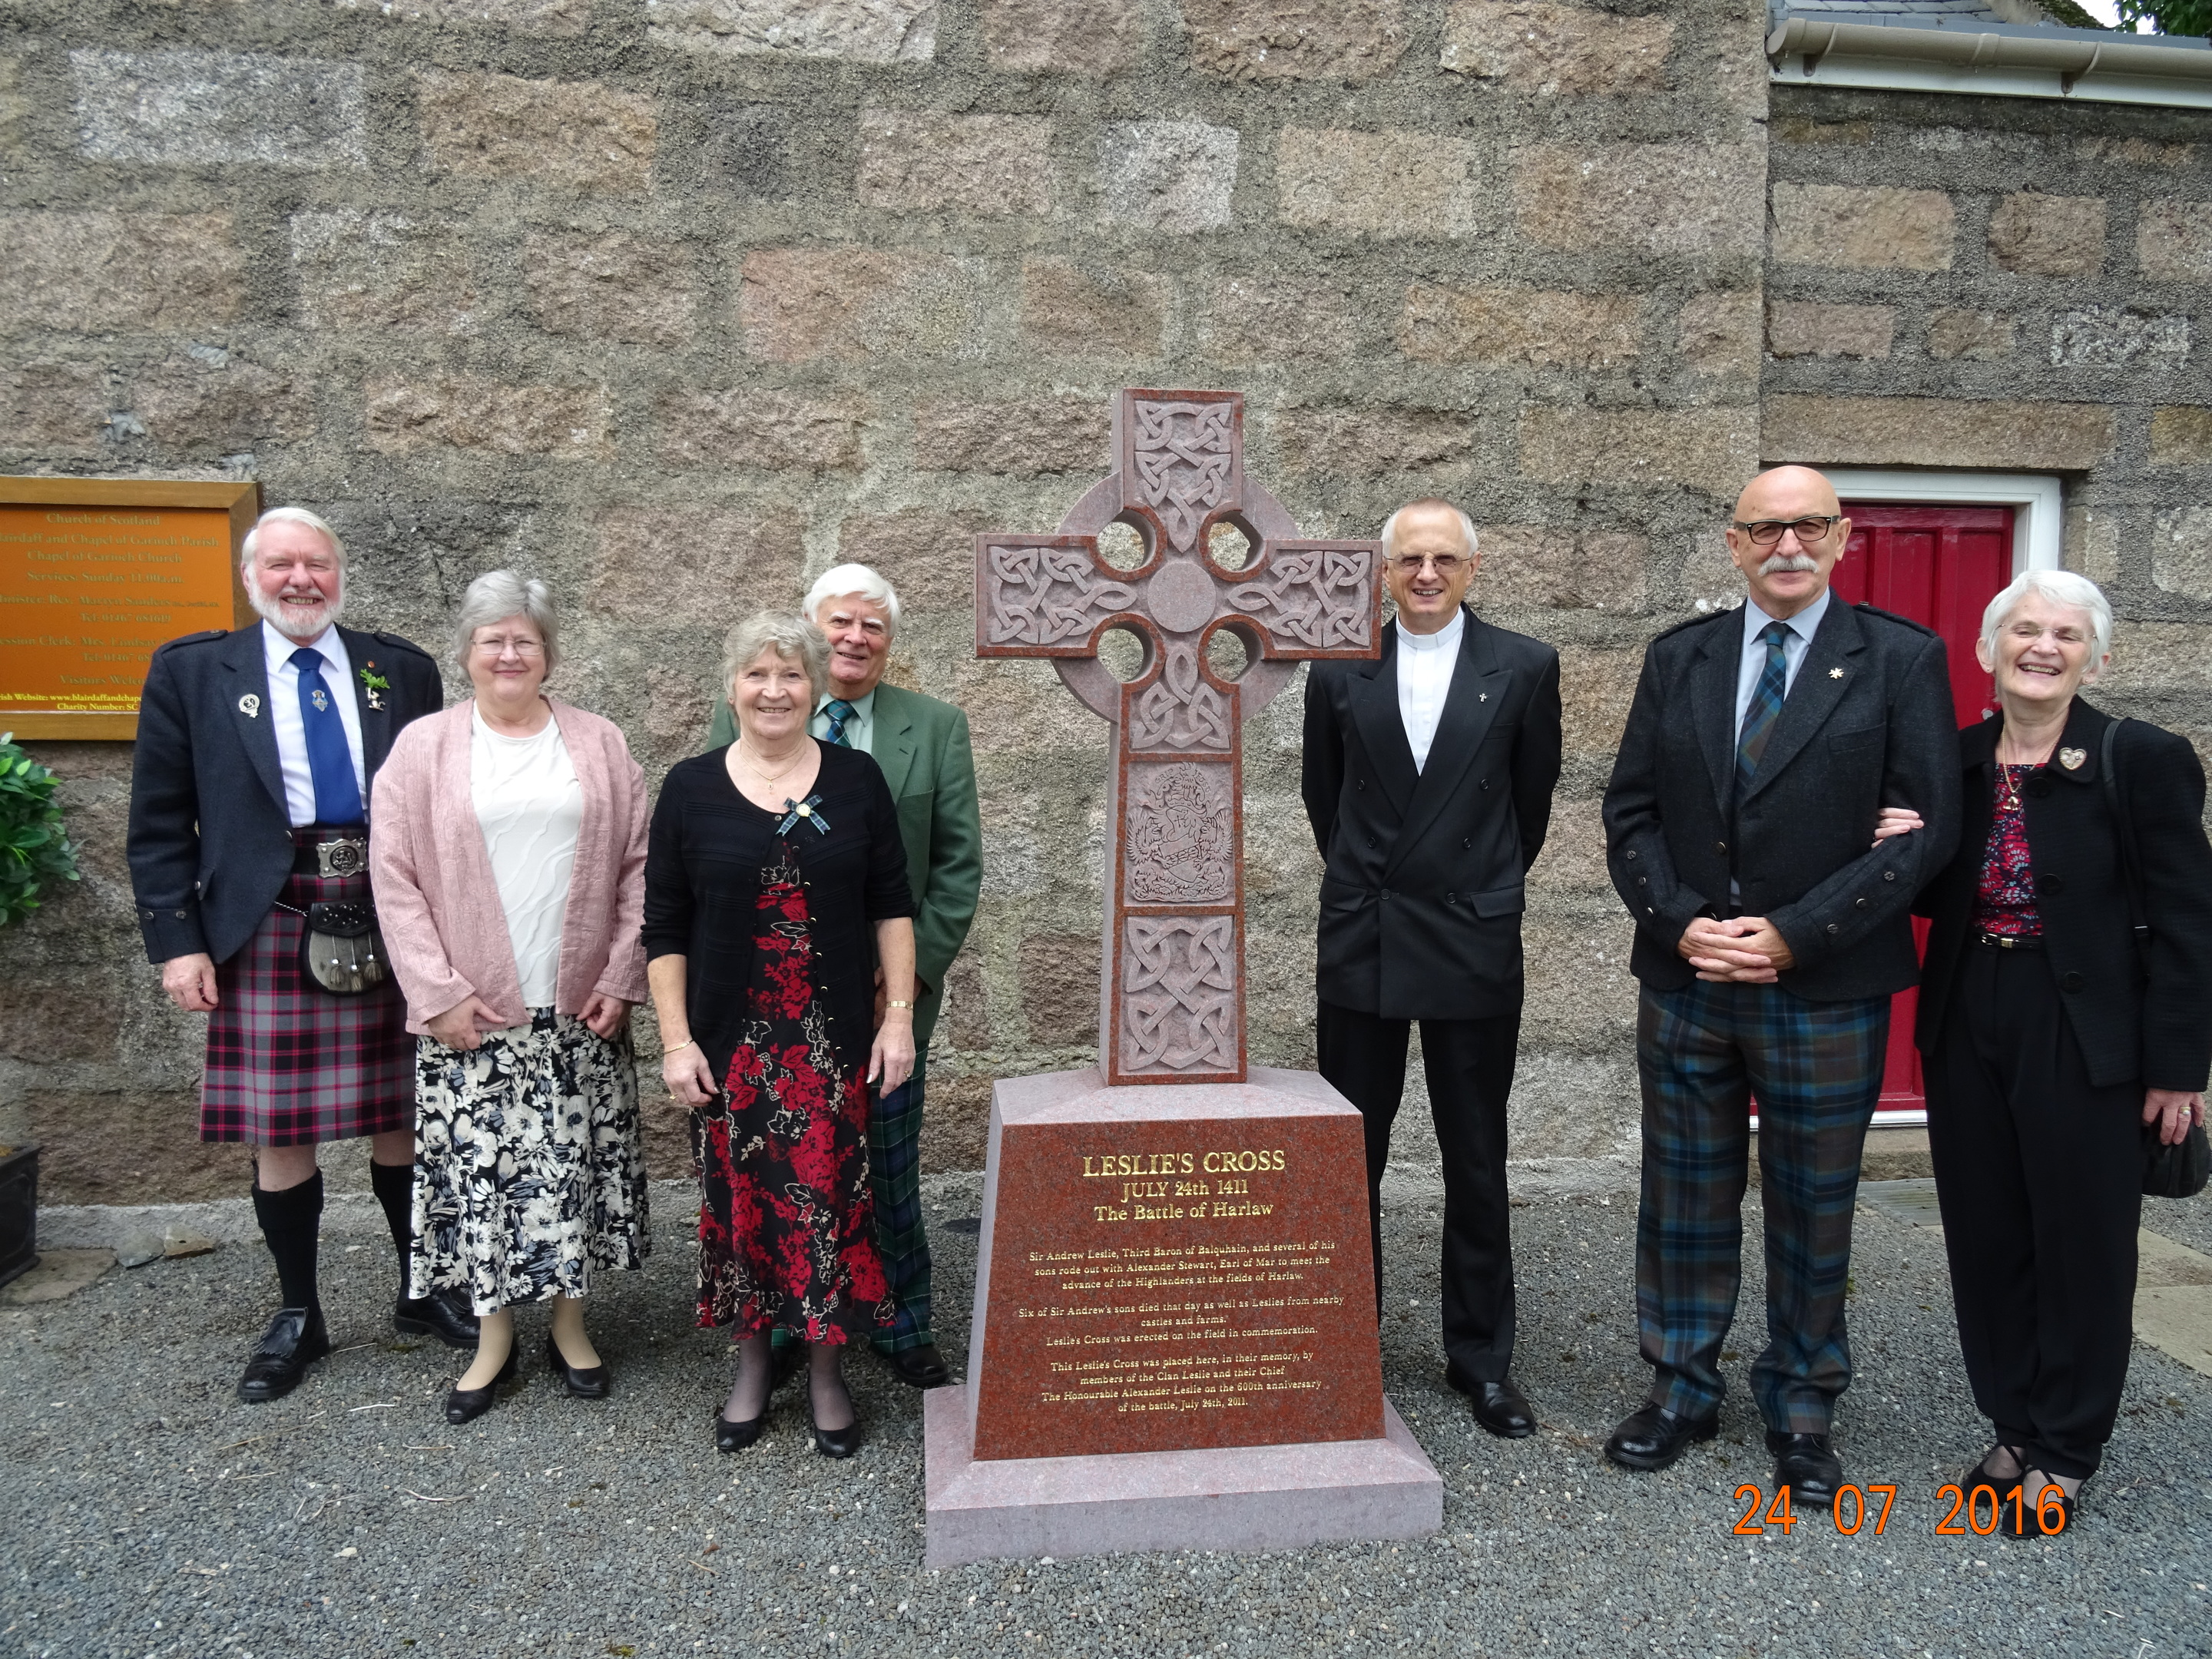 The Battle of Harlaw service was held at Chapel of Garioch Church yesterday, Pictured: (L-R) Norman and Mary MacPhearson, Leslie and David Leslie, Rev Martyn Sanders, and Albert and Linda Thompson. Credit: Angela Hogg.